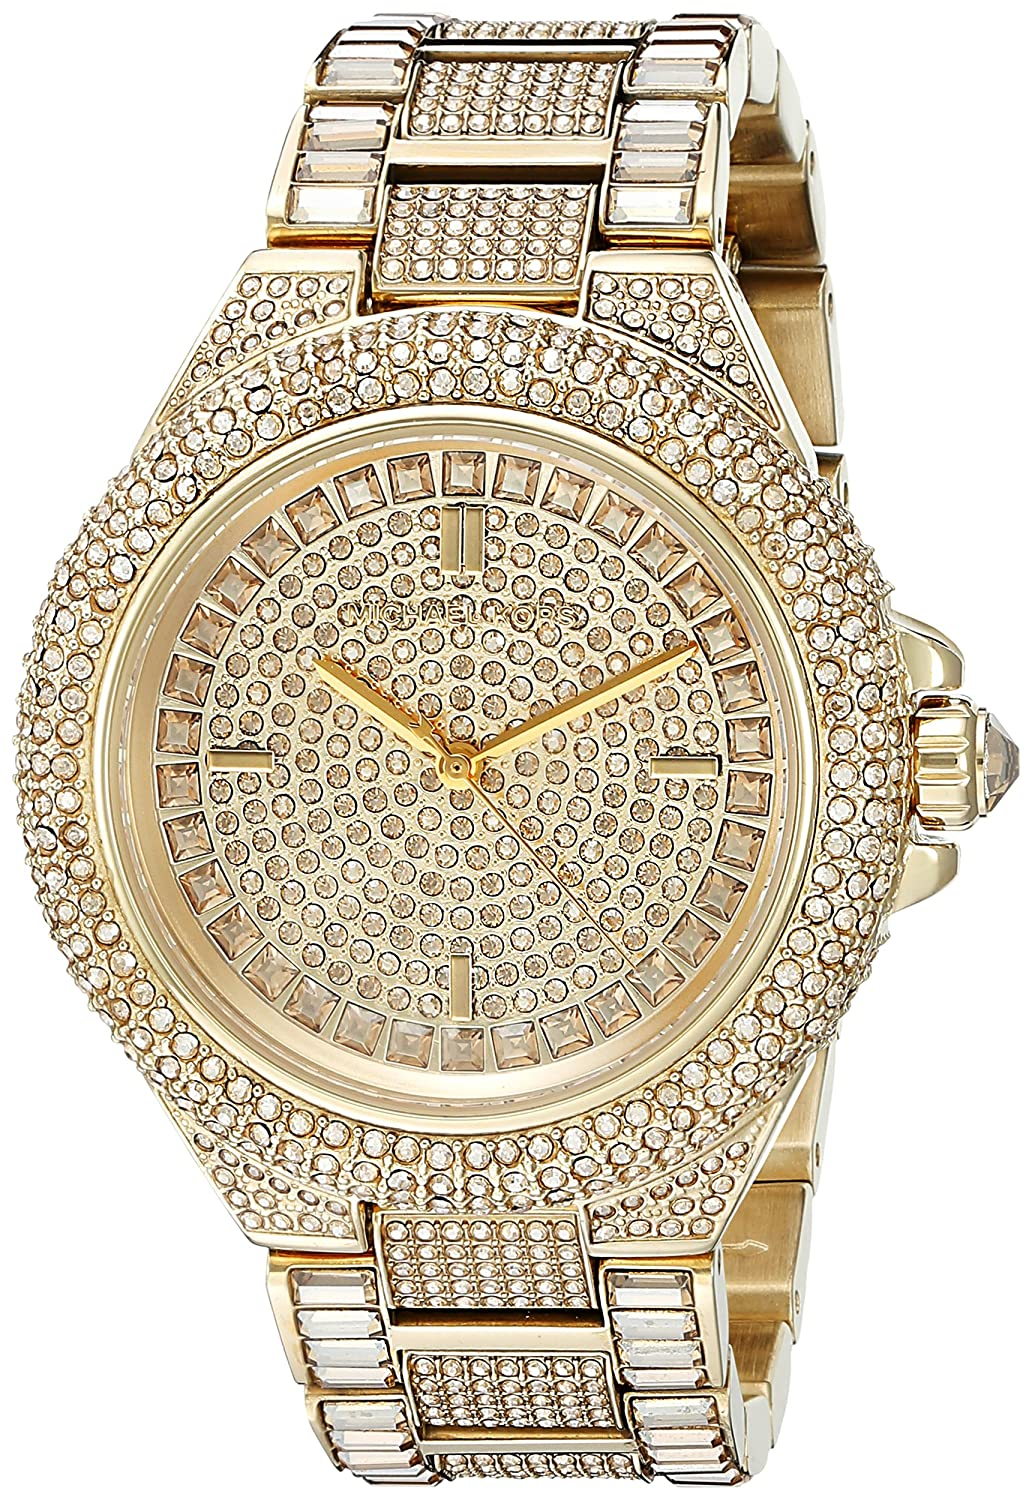 michael kors women 9 mm gold coloured gold plated stainless steel michael kors women 9 mm gold coloured gold plated stainless steel bracelet watch mk5720 michael kors amazon co uk watches